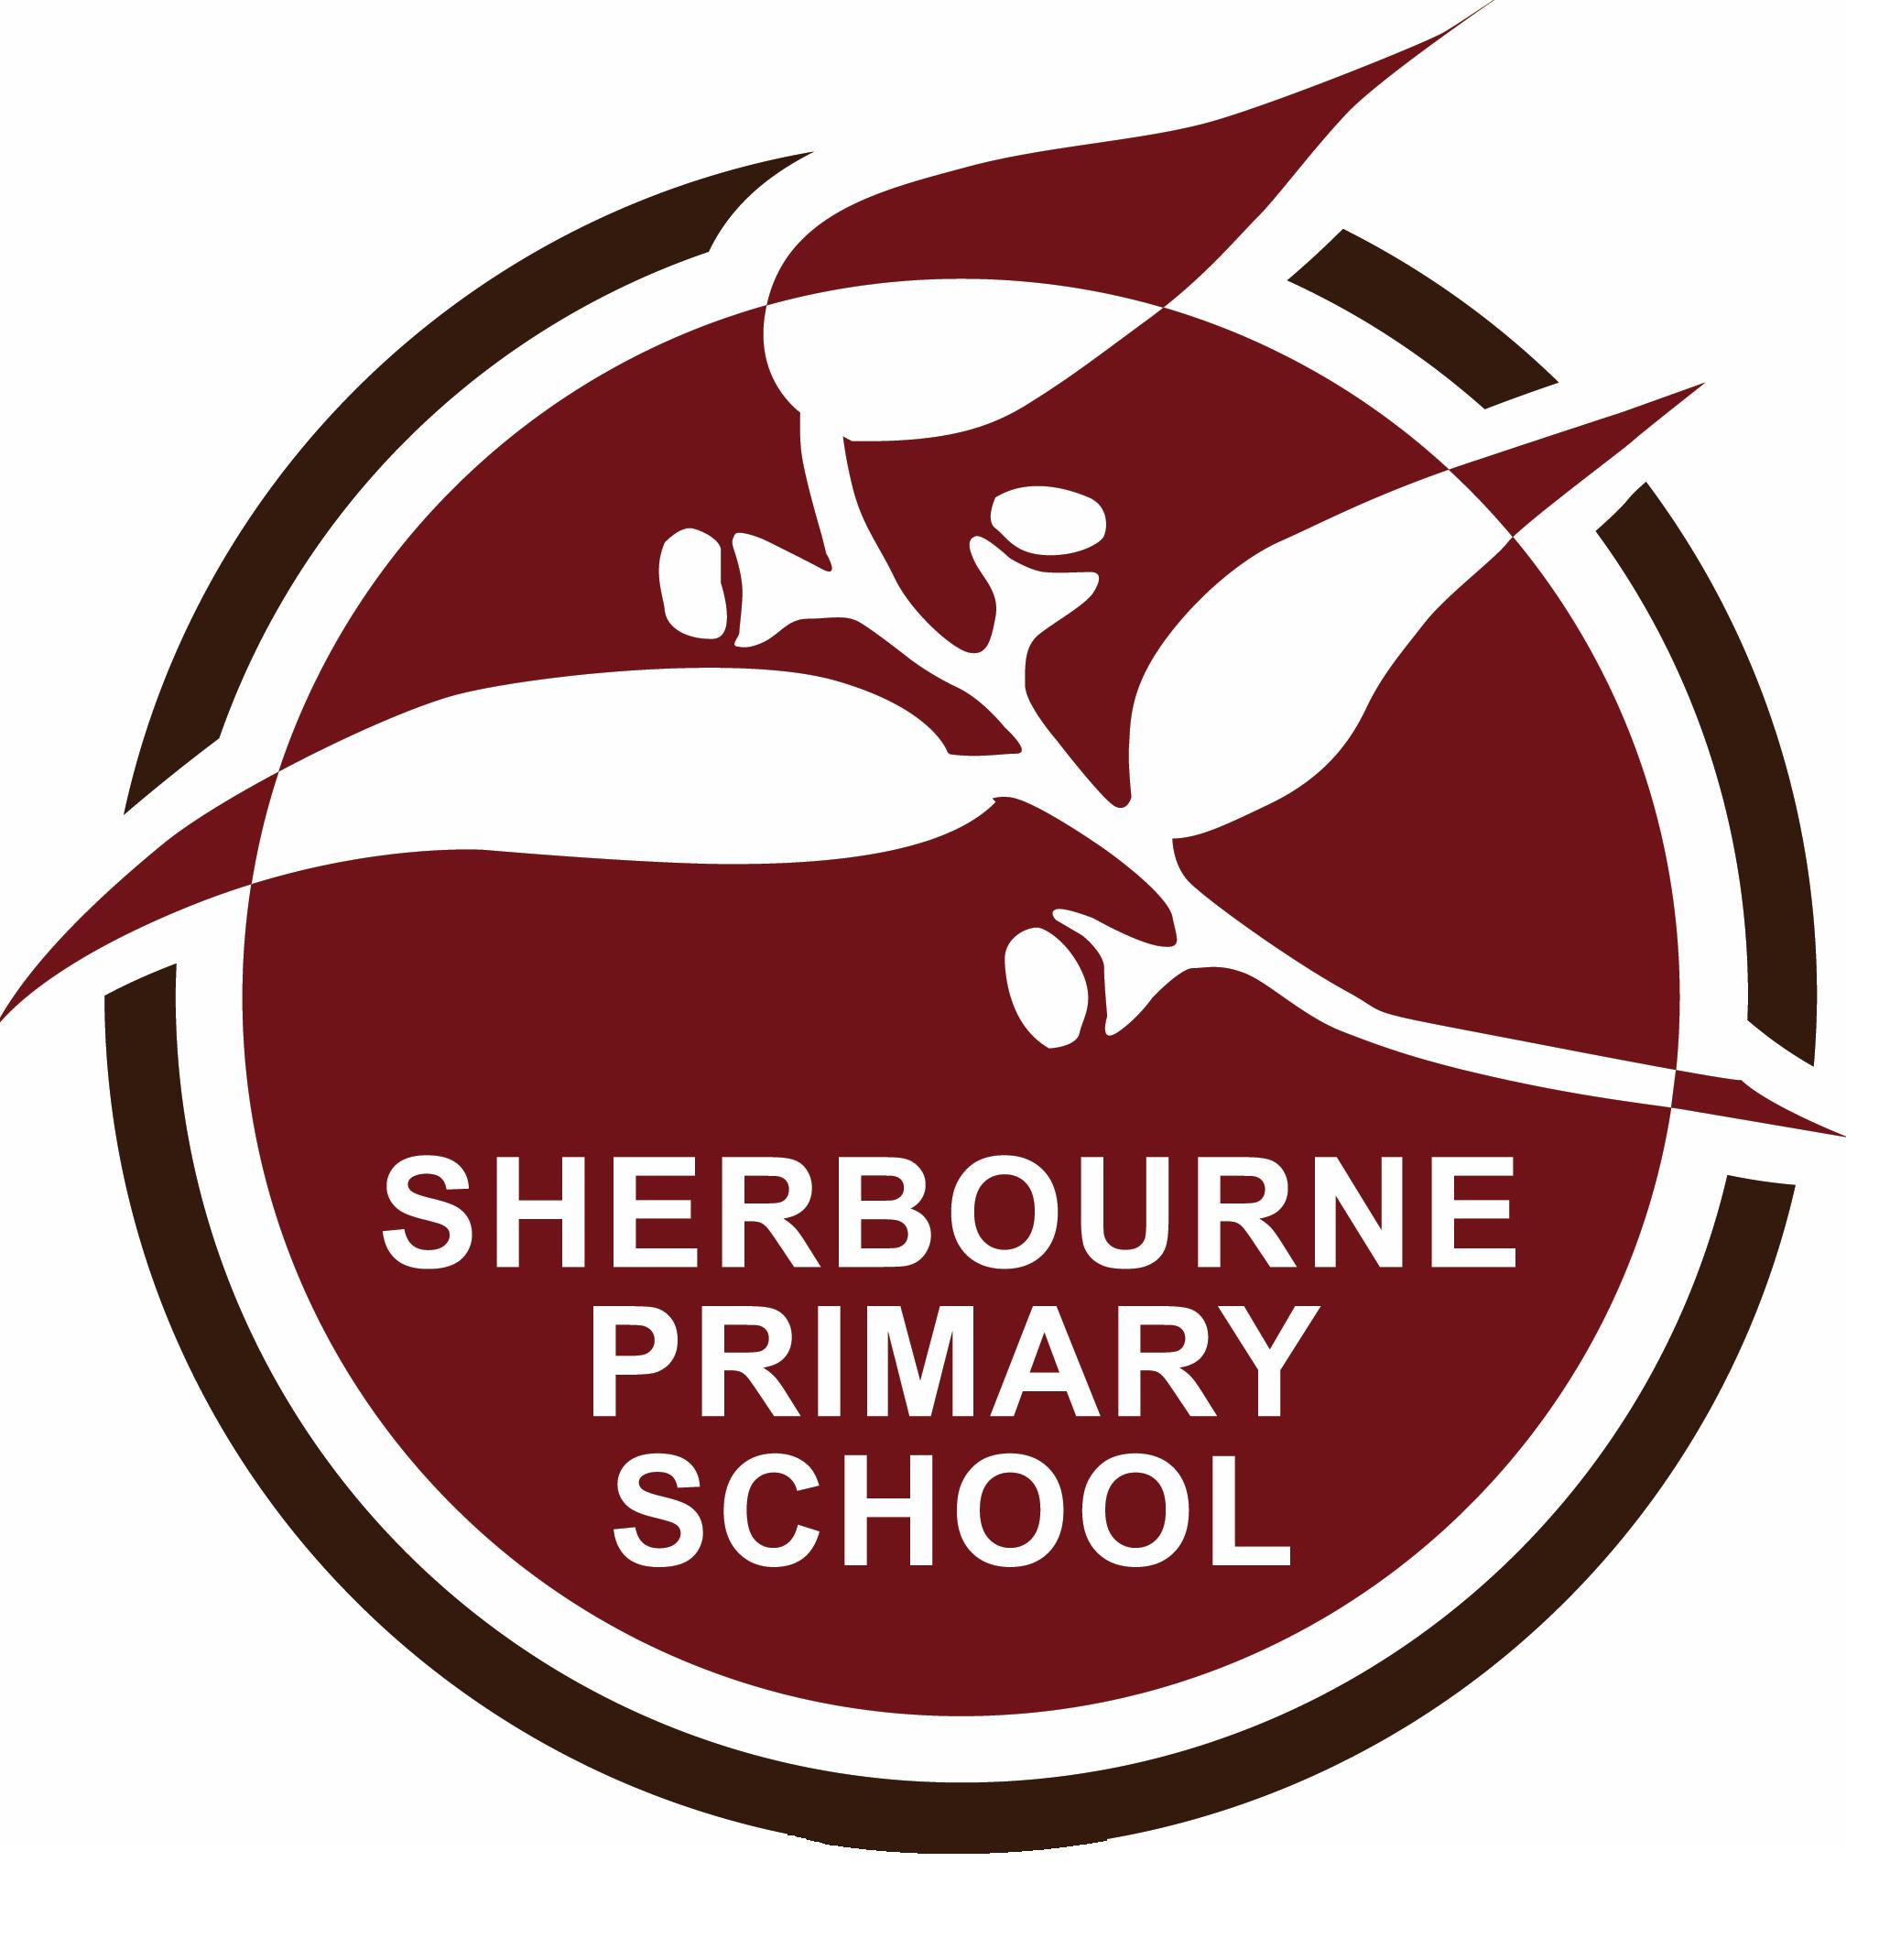 Sherbourne Primary School